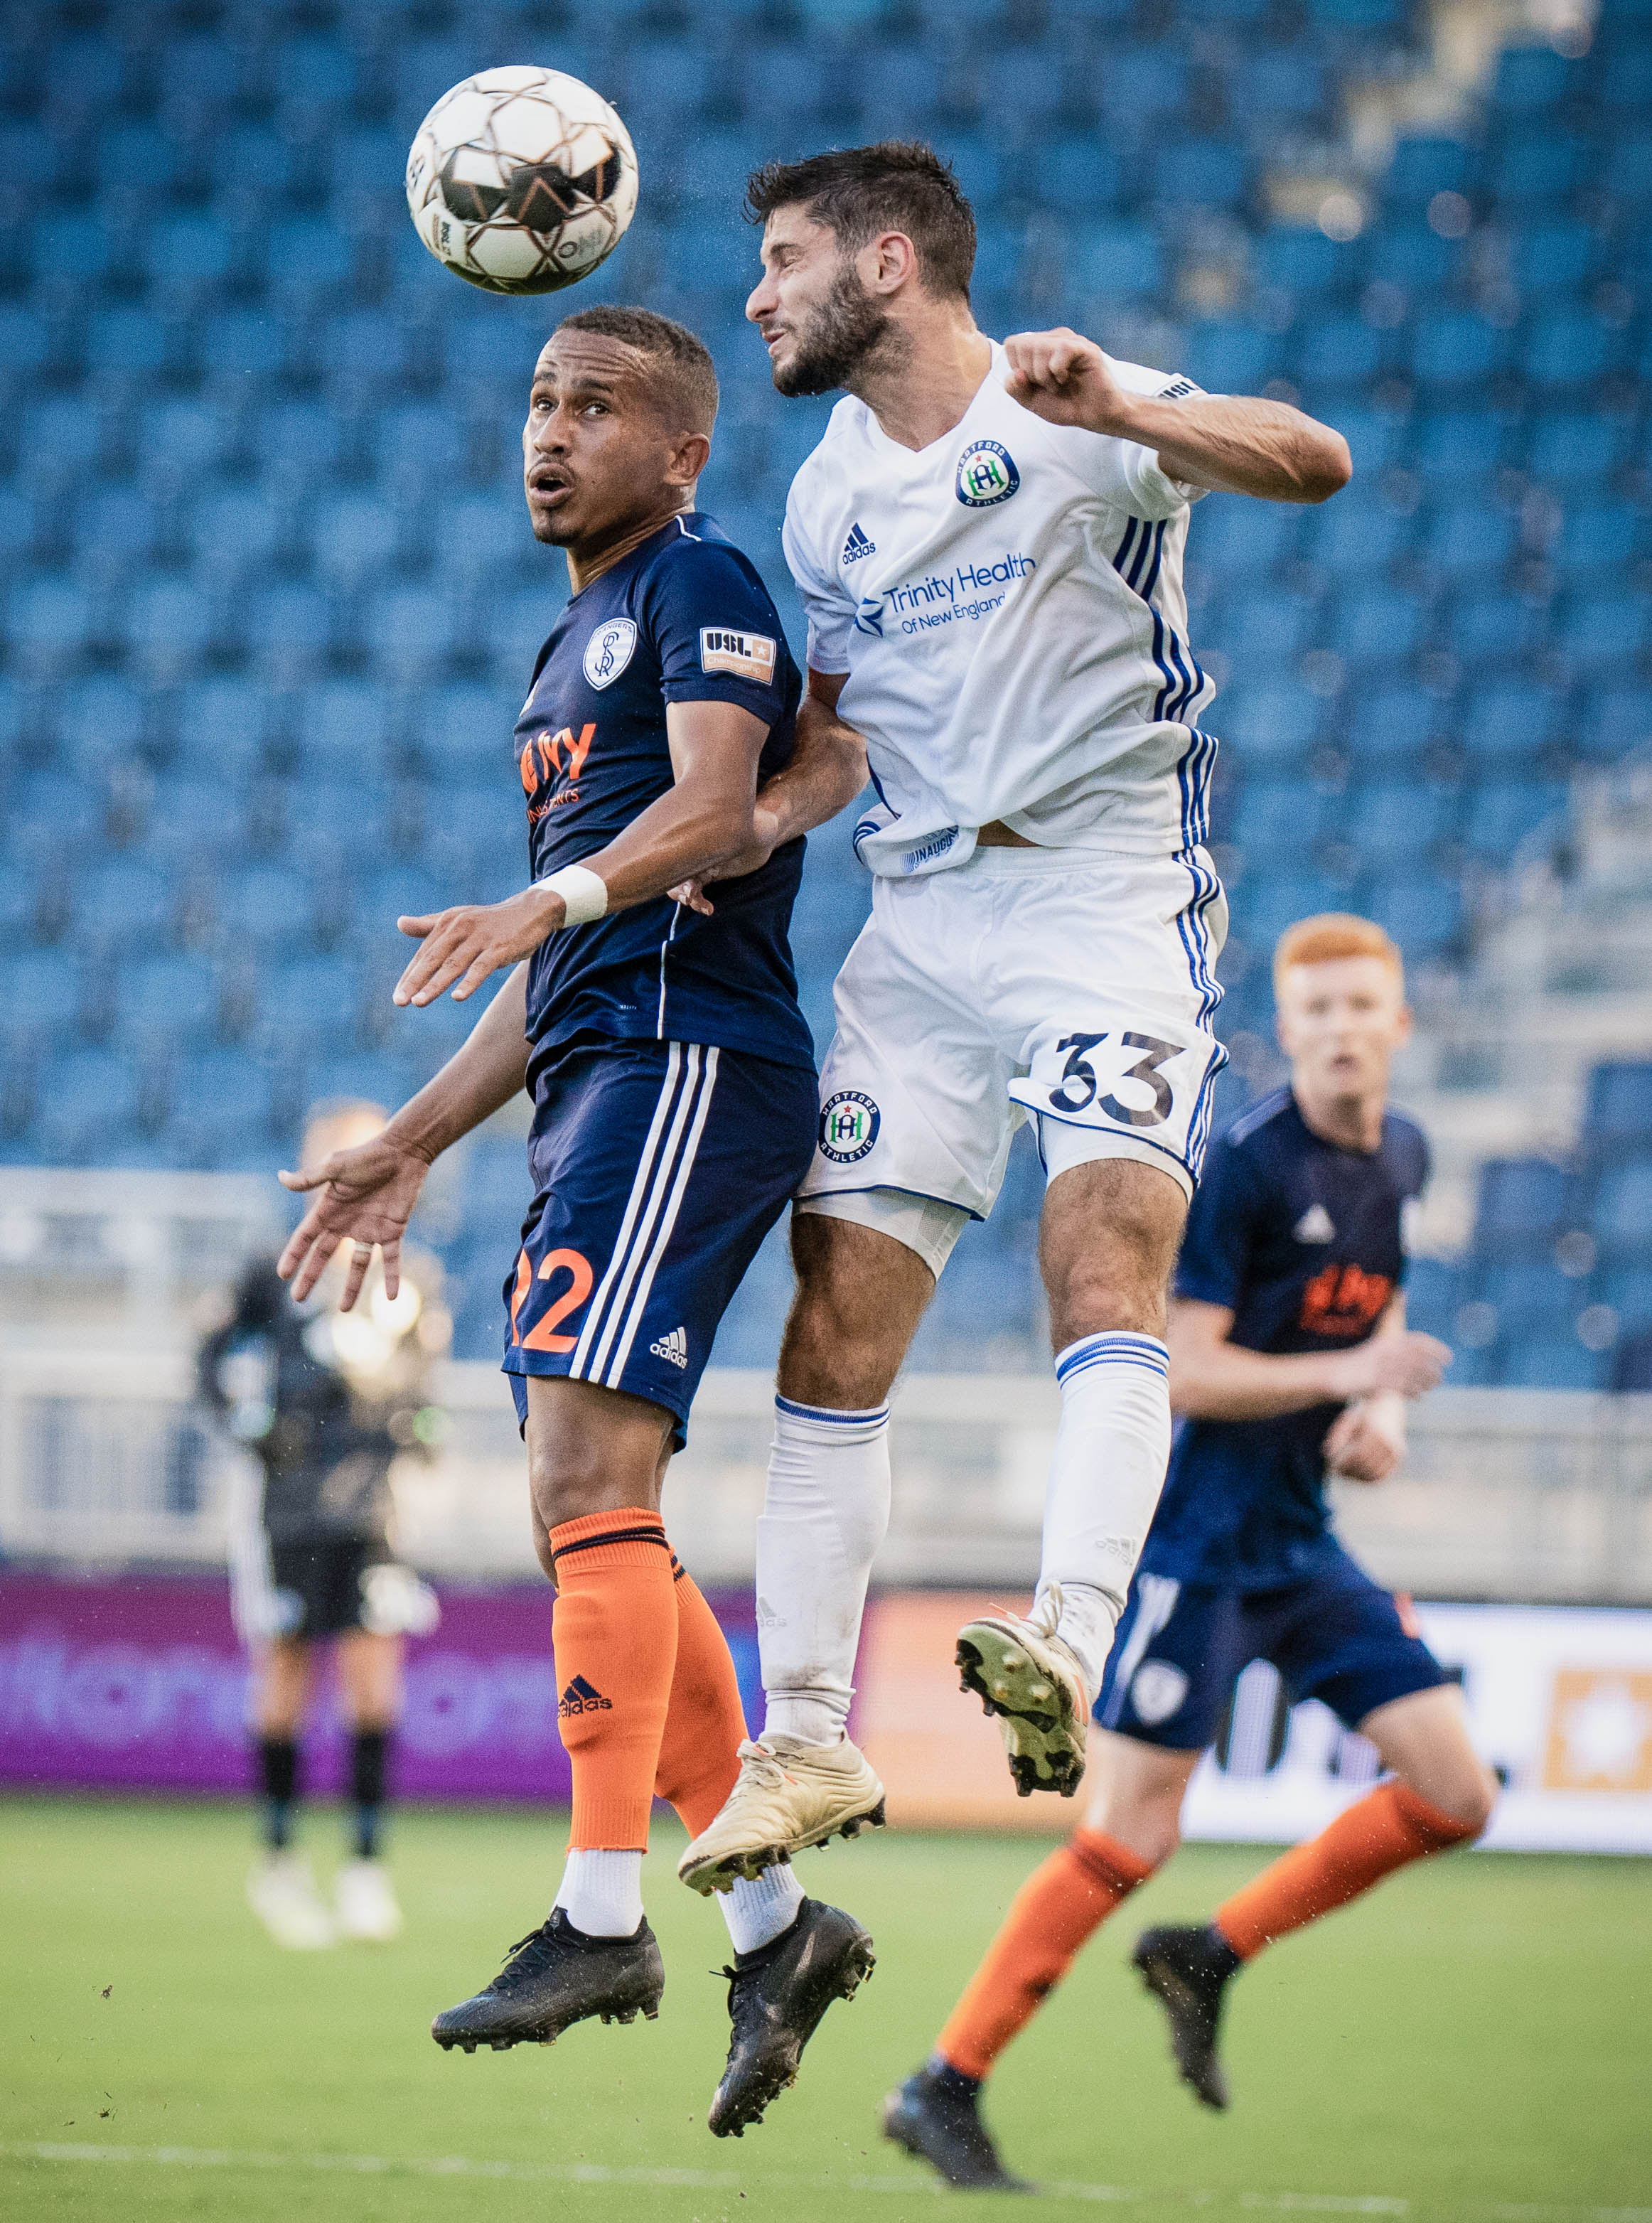 Alex heads the ball during the Swope Park Rangers vs. Hartford Athletic match on Wednesday, July 17, 2019 at Children's Mercy Park in Kansas City, Kansas. The Rangers defeated Hartford 4-3 improving their record to 3-6-9.